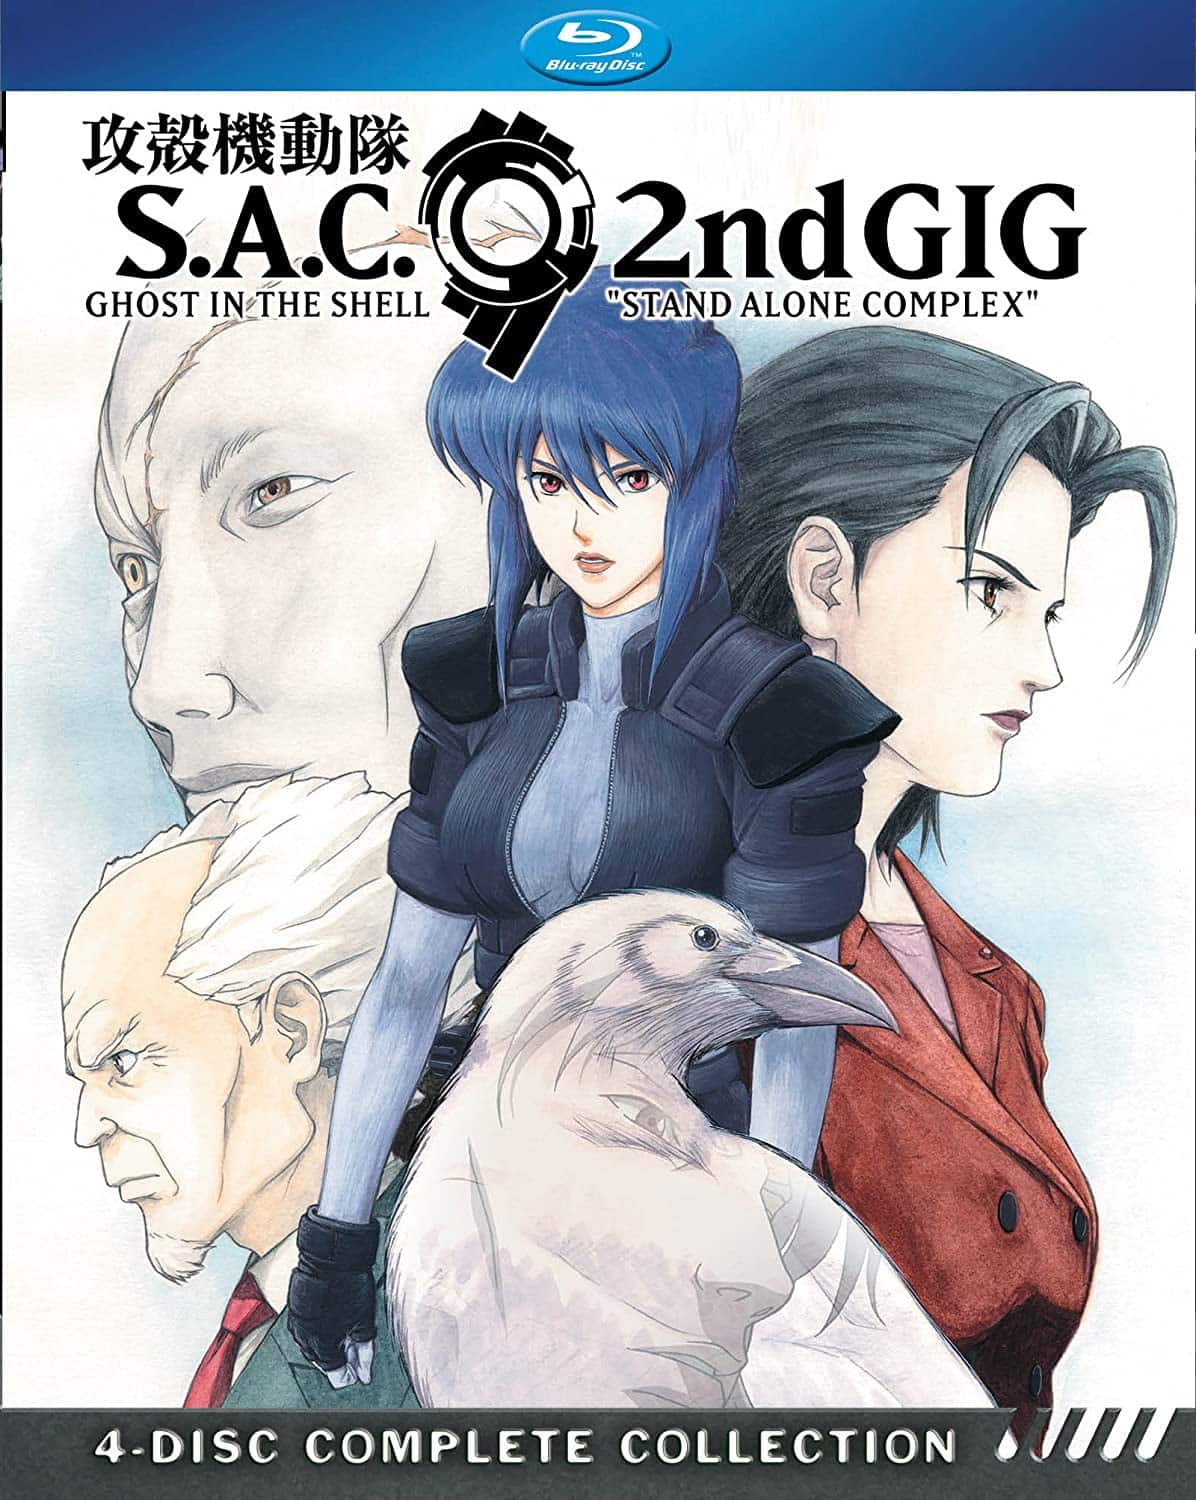 Ghost in the Shell: Stand Alone Complex 2nd Gig [Blu-ray] - $5 at Amazon $4.99